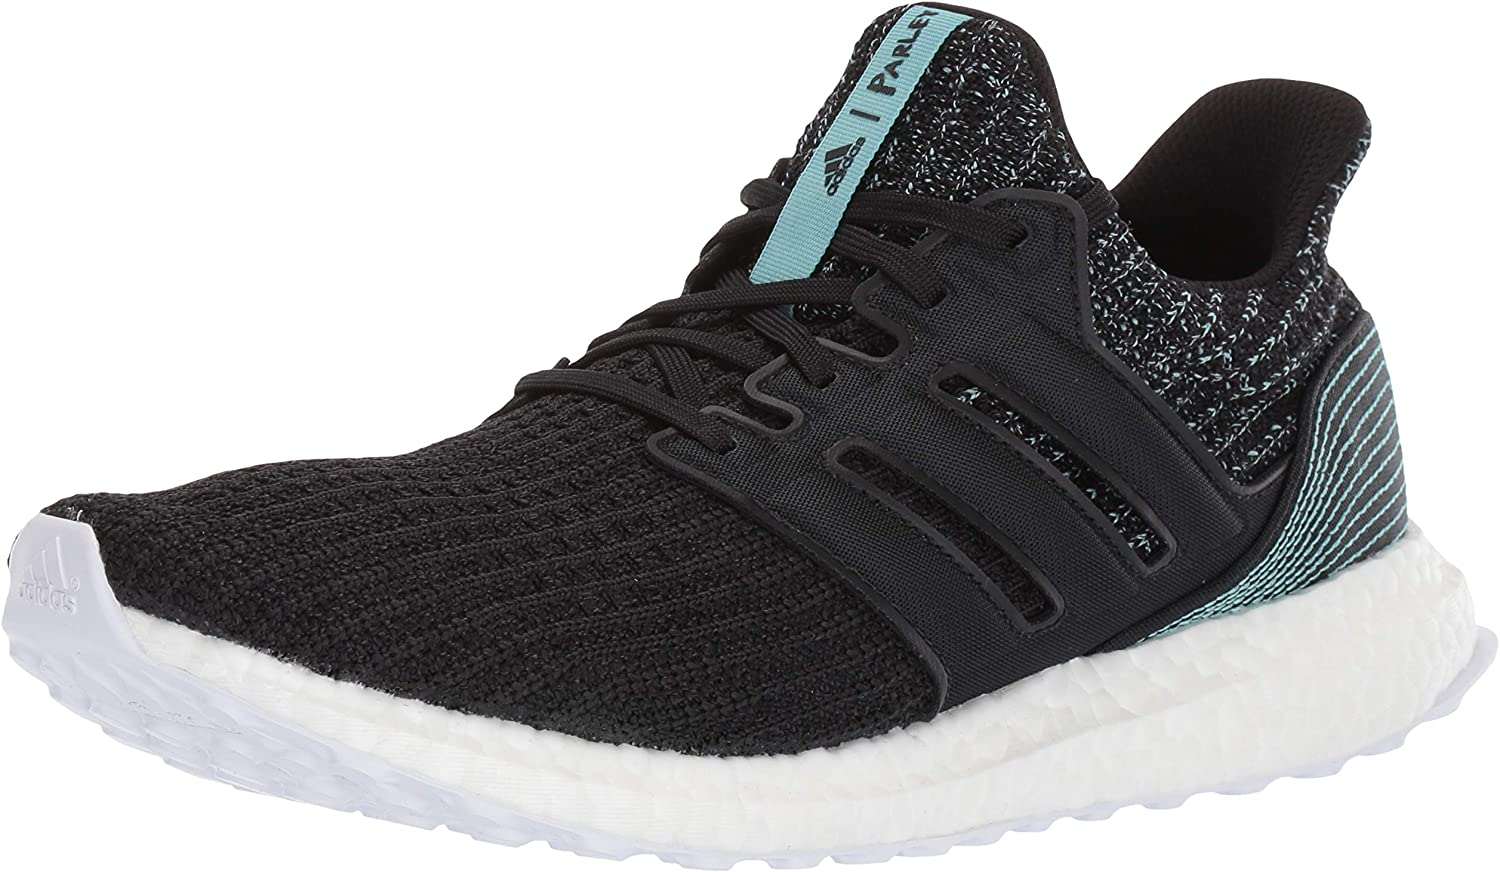 adidas Men's Gifts Ultraboost Limited time sale Shoe Running Parley